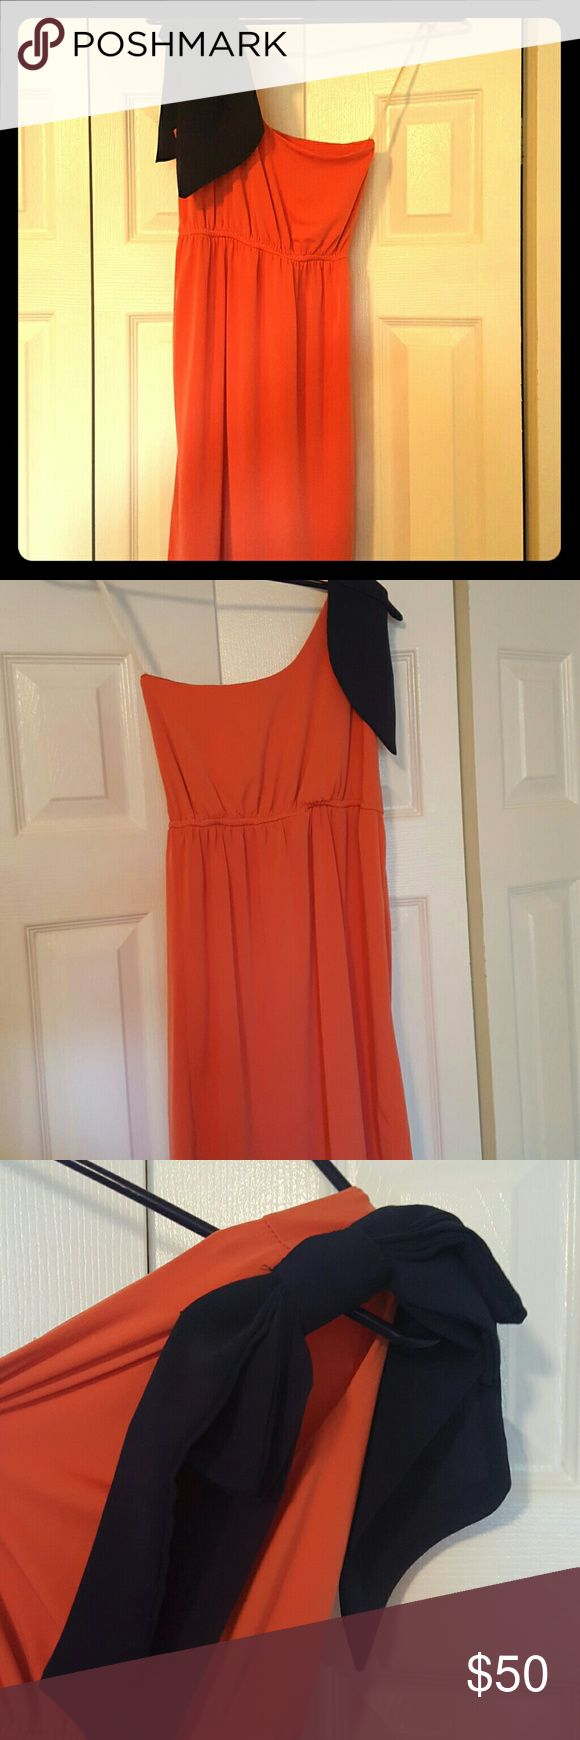 Judith March One-shoulder Dress Stunning Orange dress with Blue bow on shoulder. Great for a summer day or Saturday football games rooting on your school. Great Condition, only wore 1 time. Judith March Dresses One Shoulder